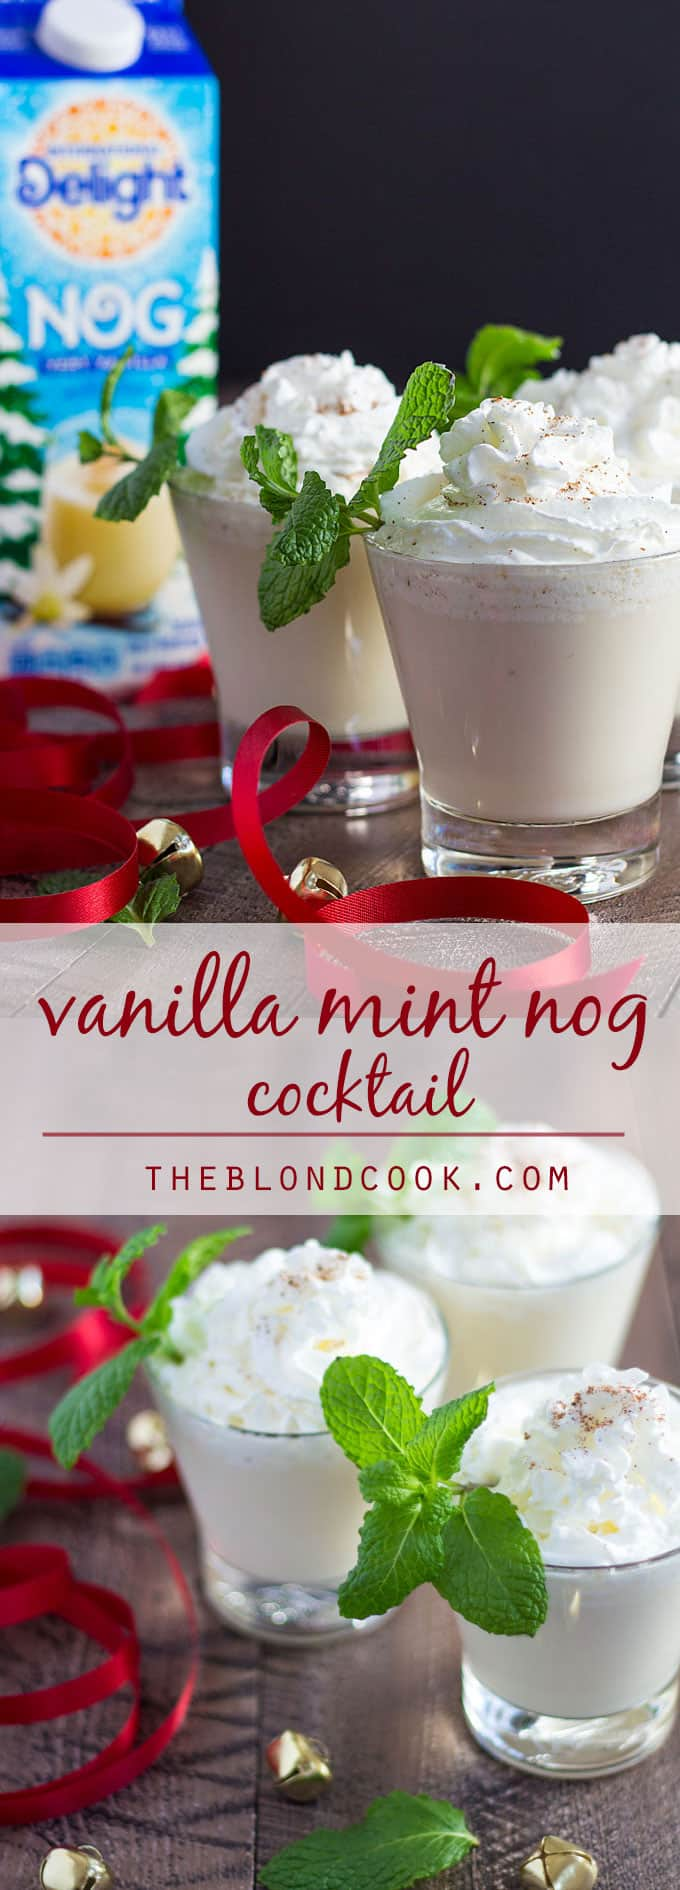 Tempting Peppermint Schnapps Make Ultimate Creamy Vanilla Mint Nog Cocktail Blond Cook Hot Peppermint Schnapps Drinks Peppermint Schnapps Drinks Holiday Vanilla Mint Nog Cocktail Vanilla Rum nice food Peppermint Schnapps Drinks